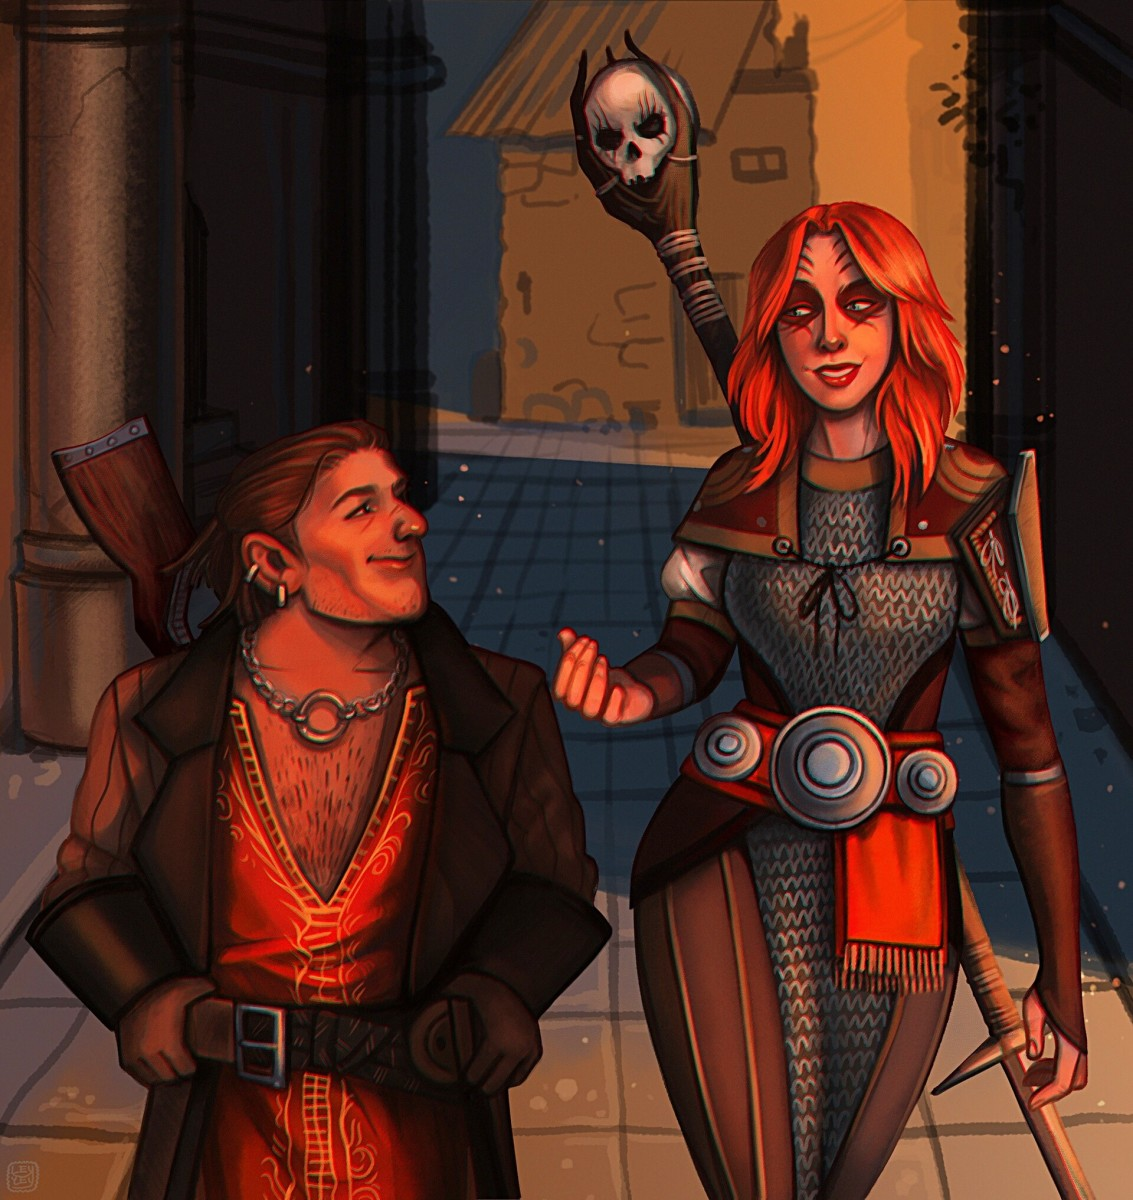 Beautiful fan art of Varric and female mage Hawke.